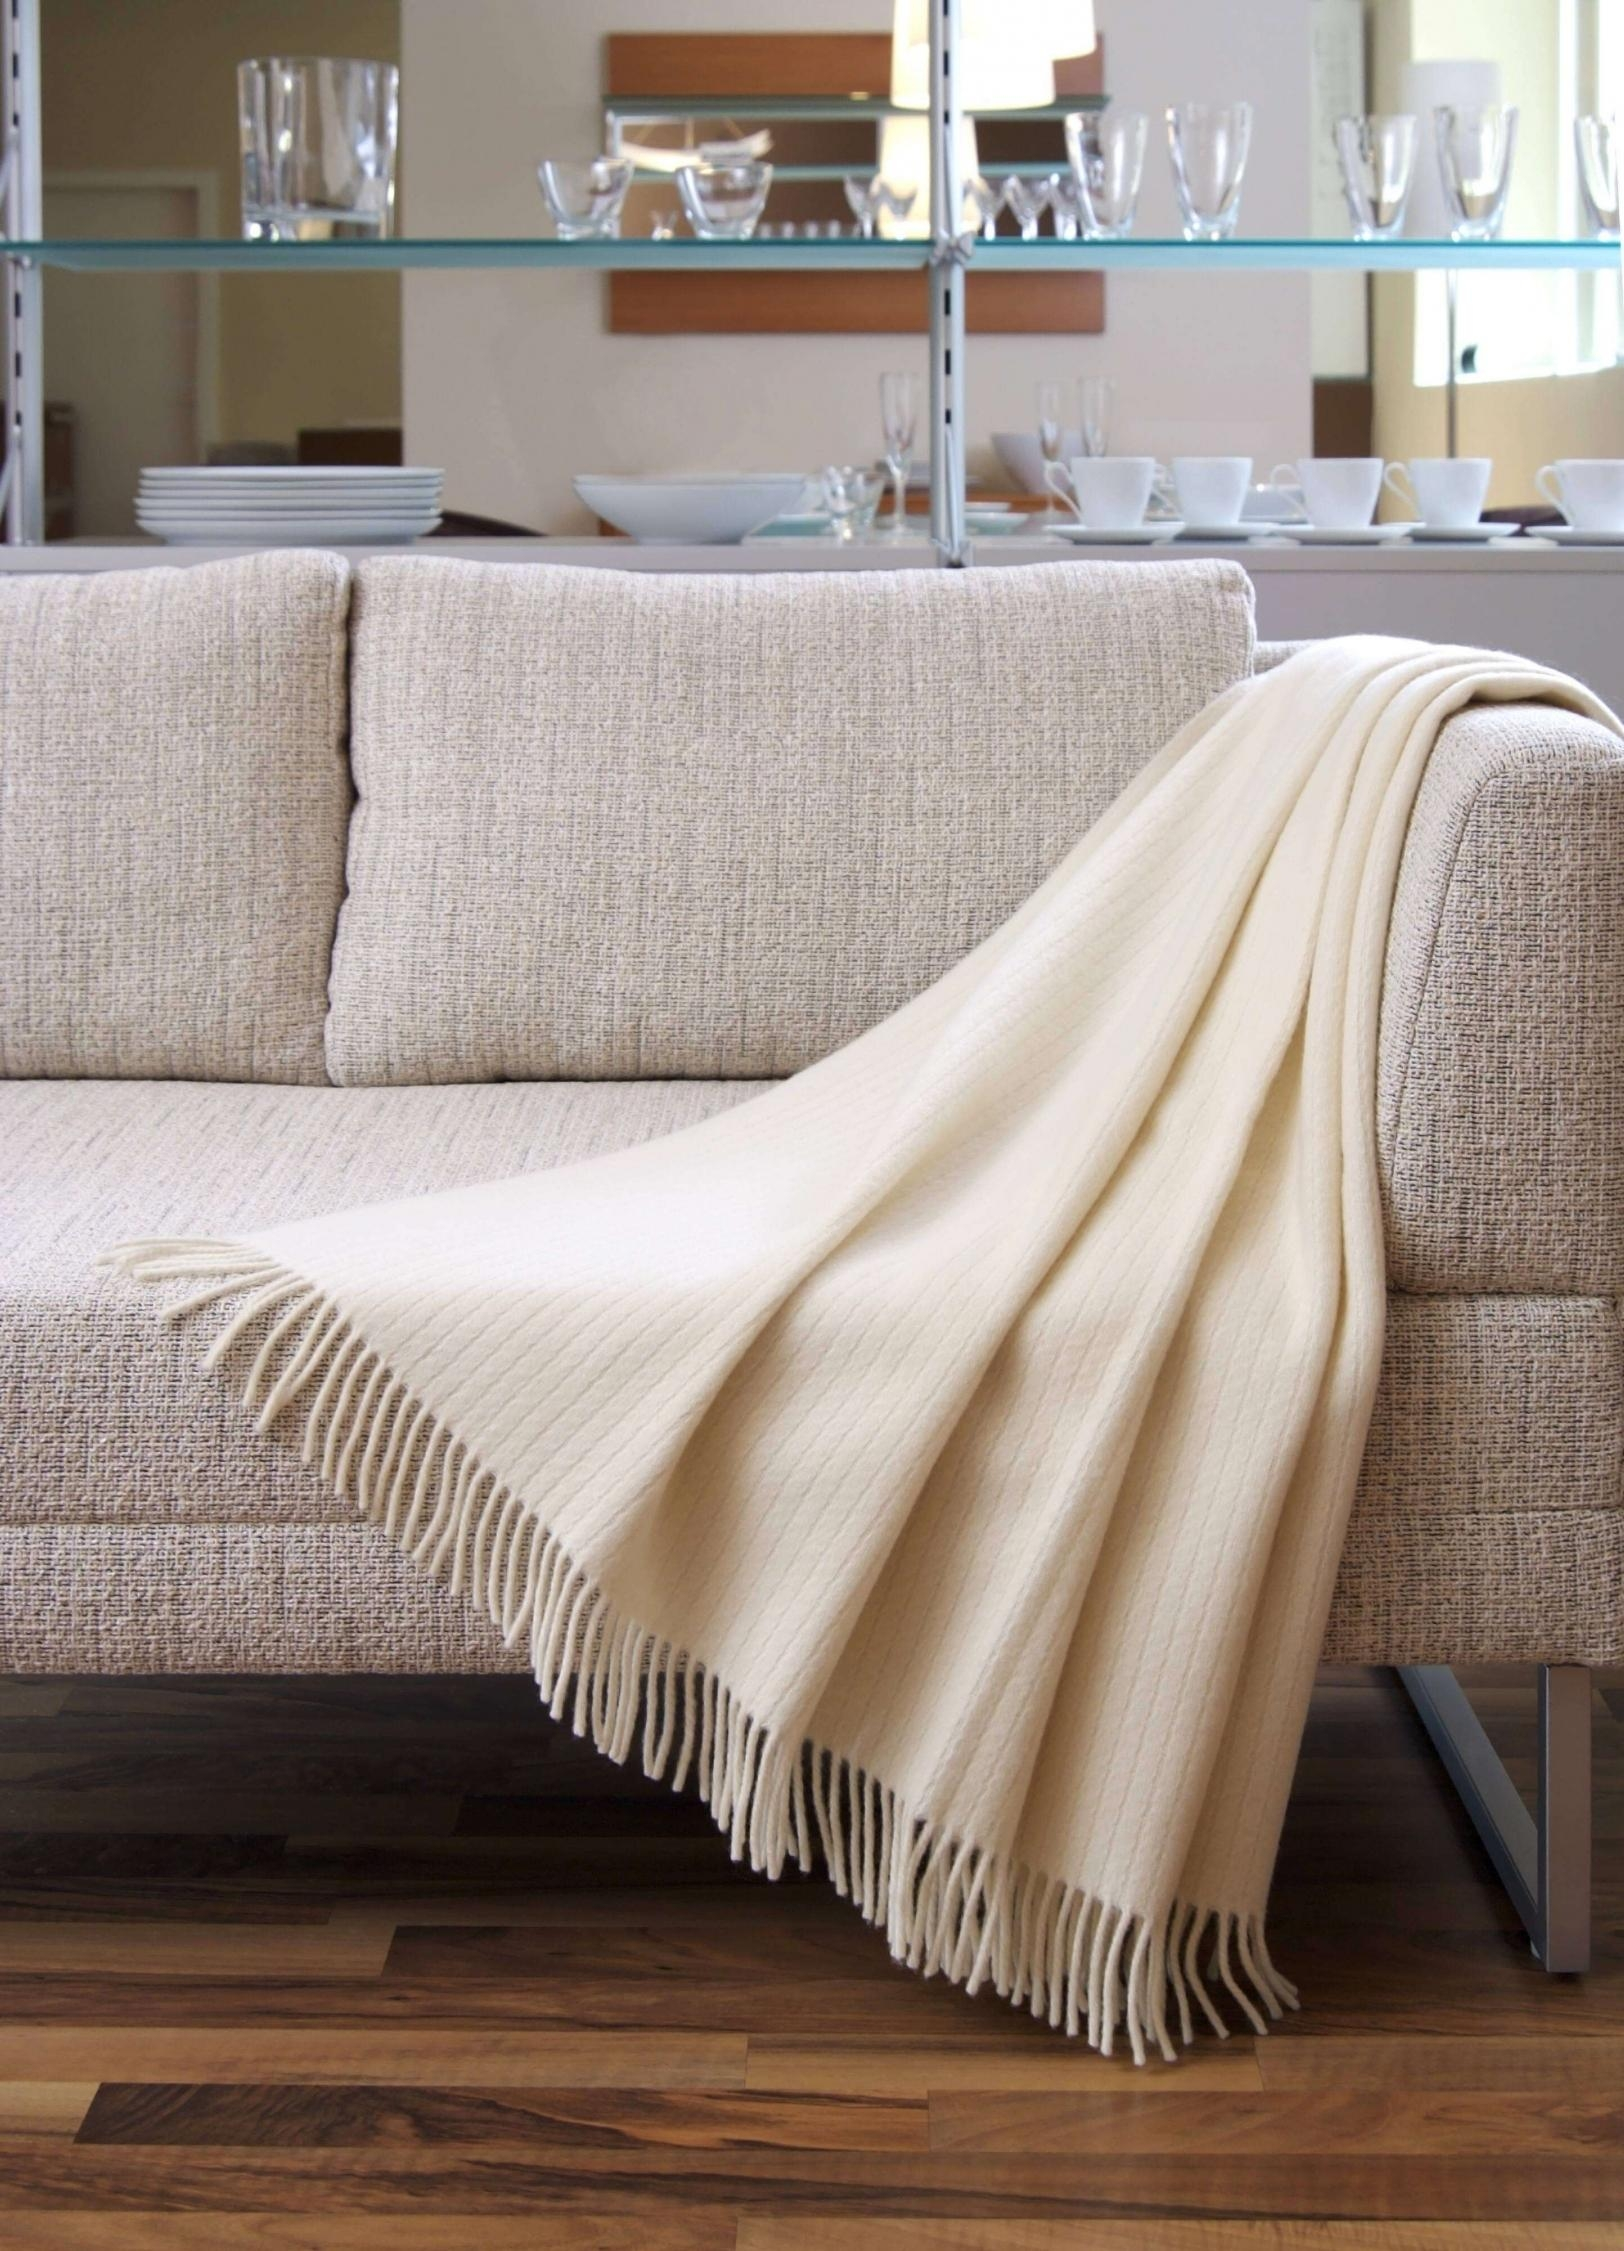 Sofas Center : Fur Throw Blankets For Sofa Cotton Sofas And Chairs Regarding Throws For Sofas And Chairs (Image 14 of 20)